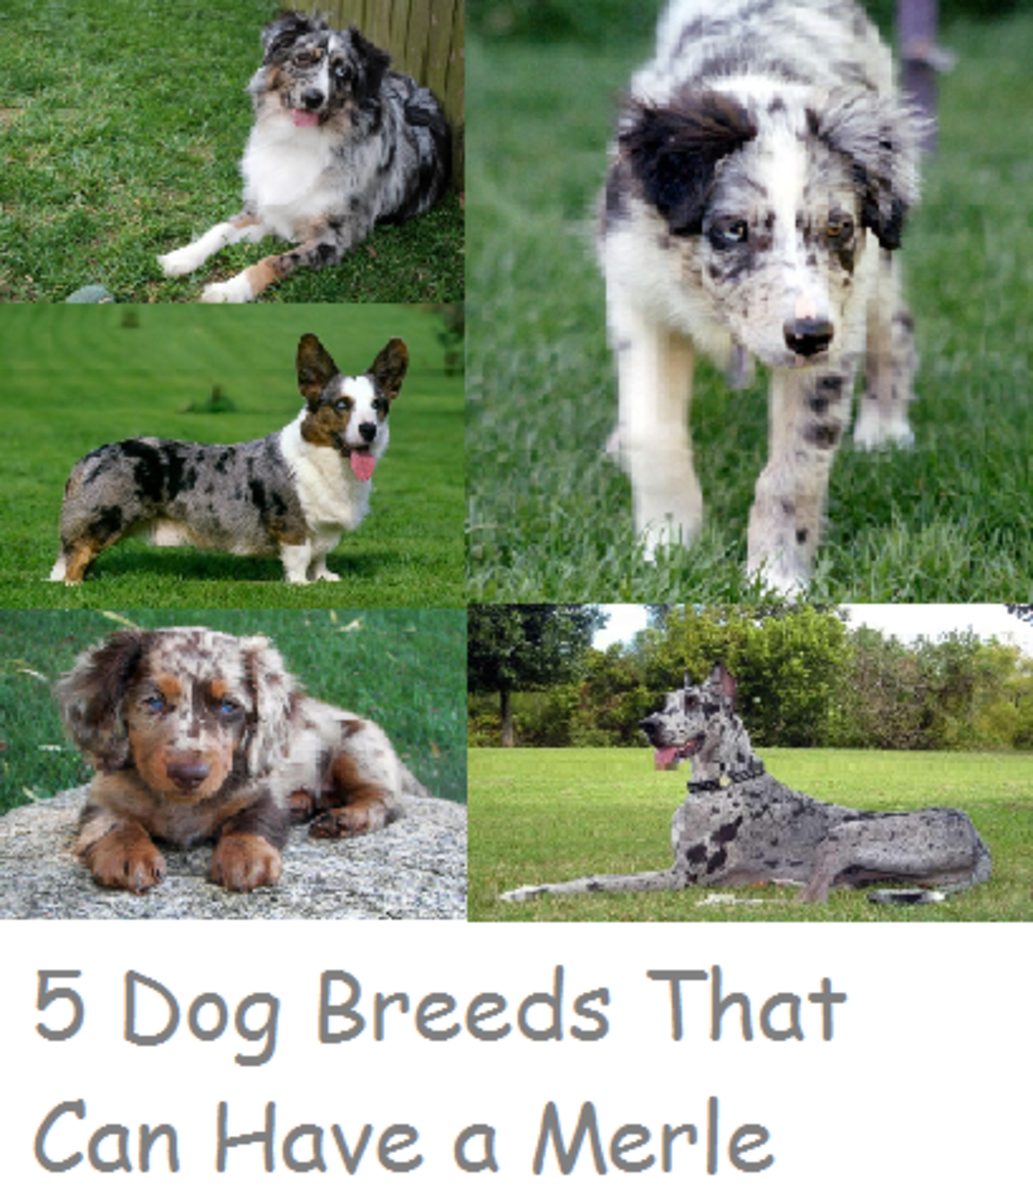 5 Dog Breeds That Can Have A Merle Coat Pethelpful